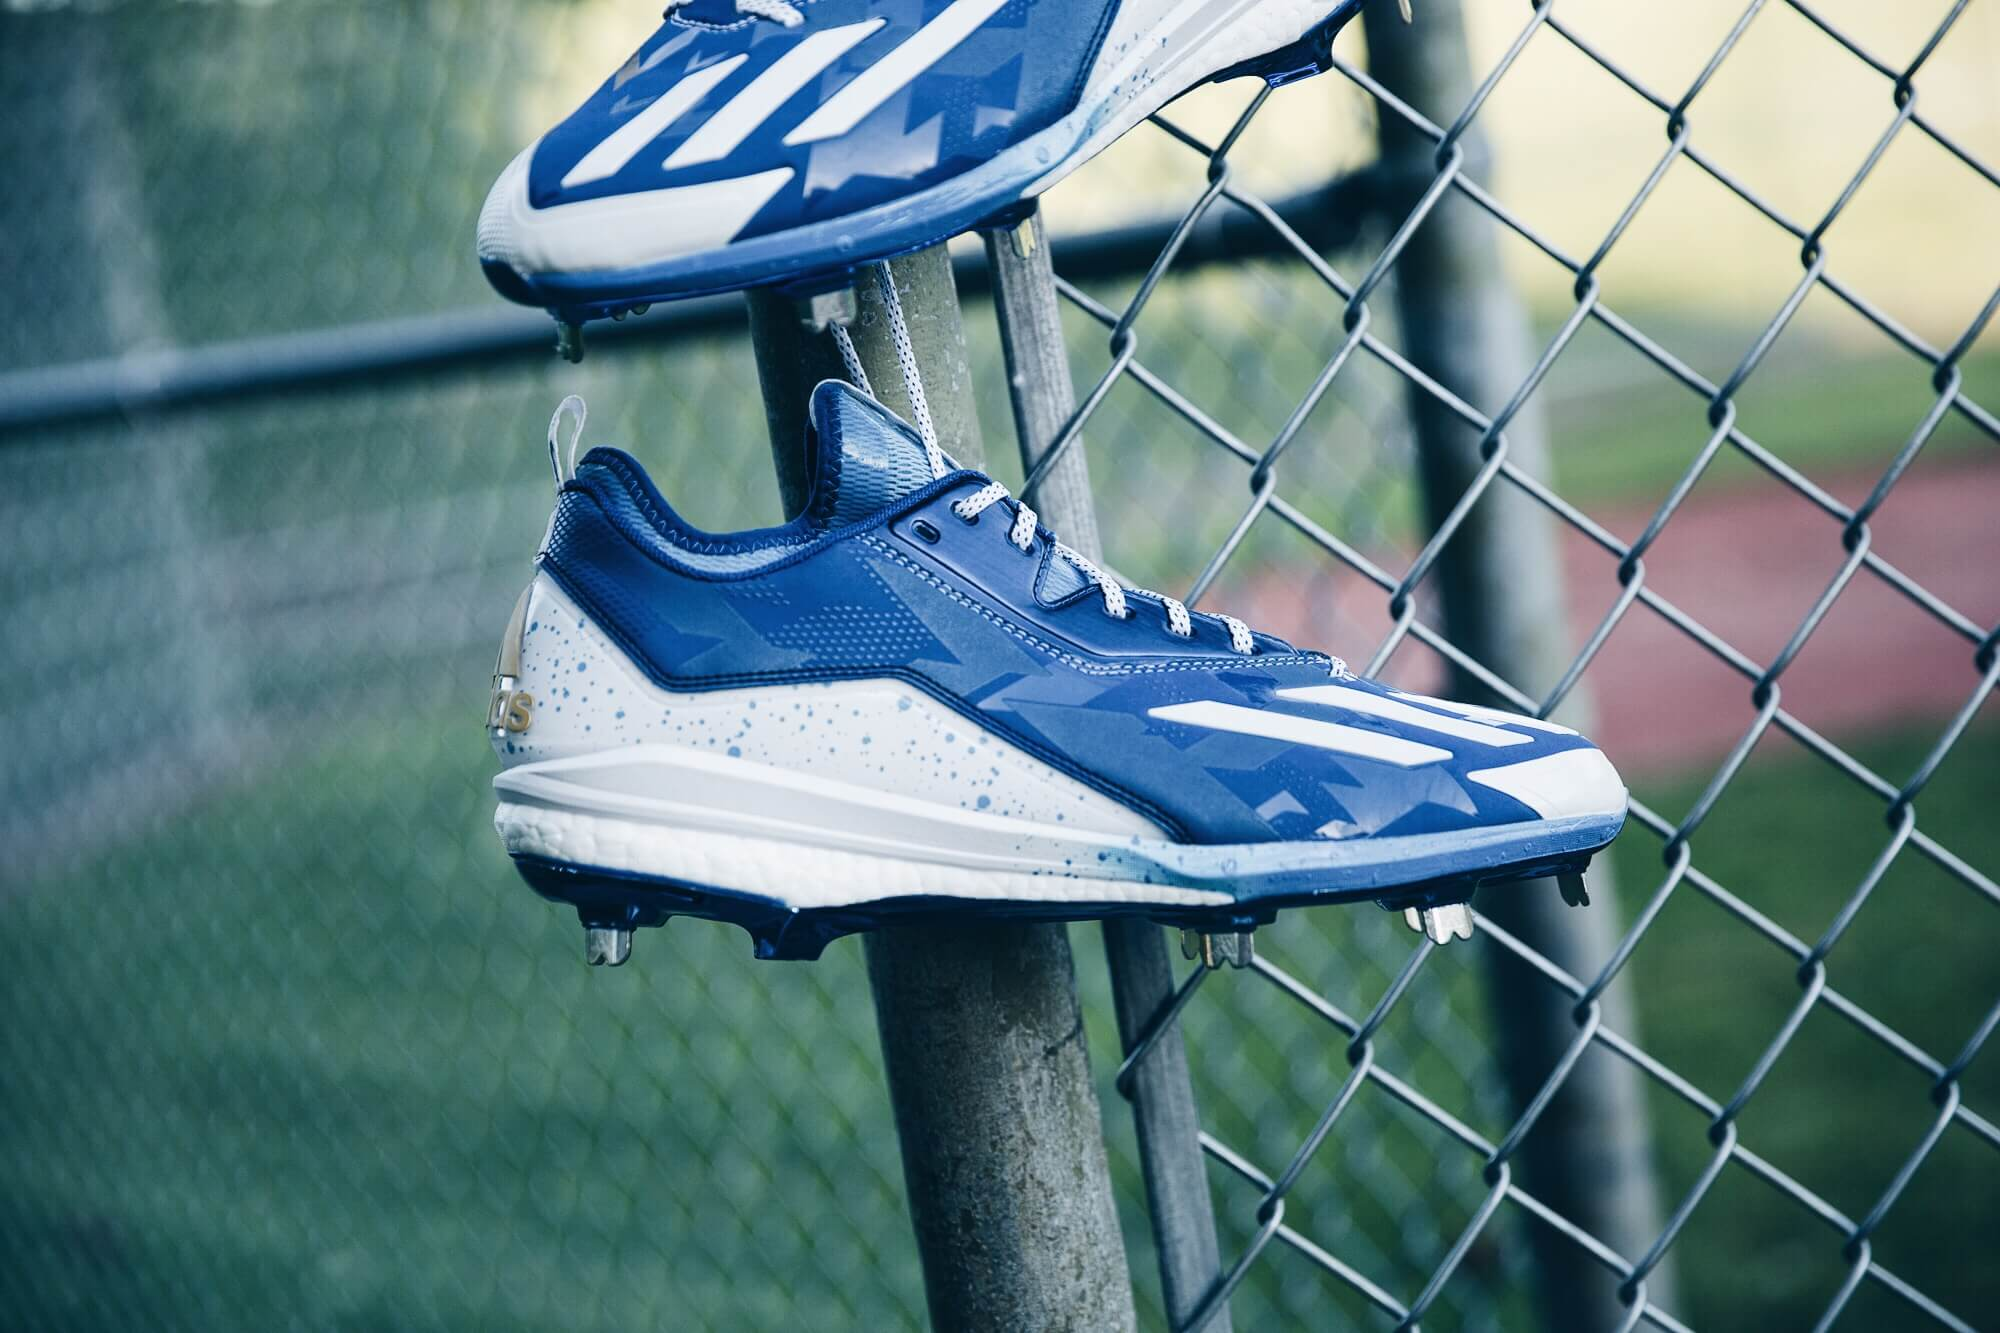 Mike Moustakas adidas Cleats